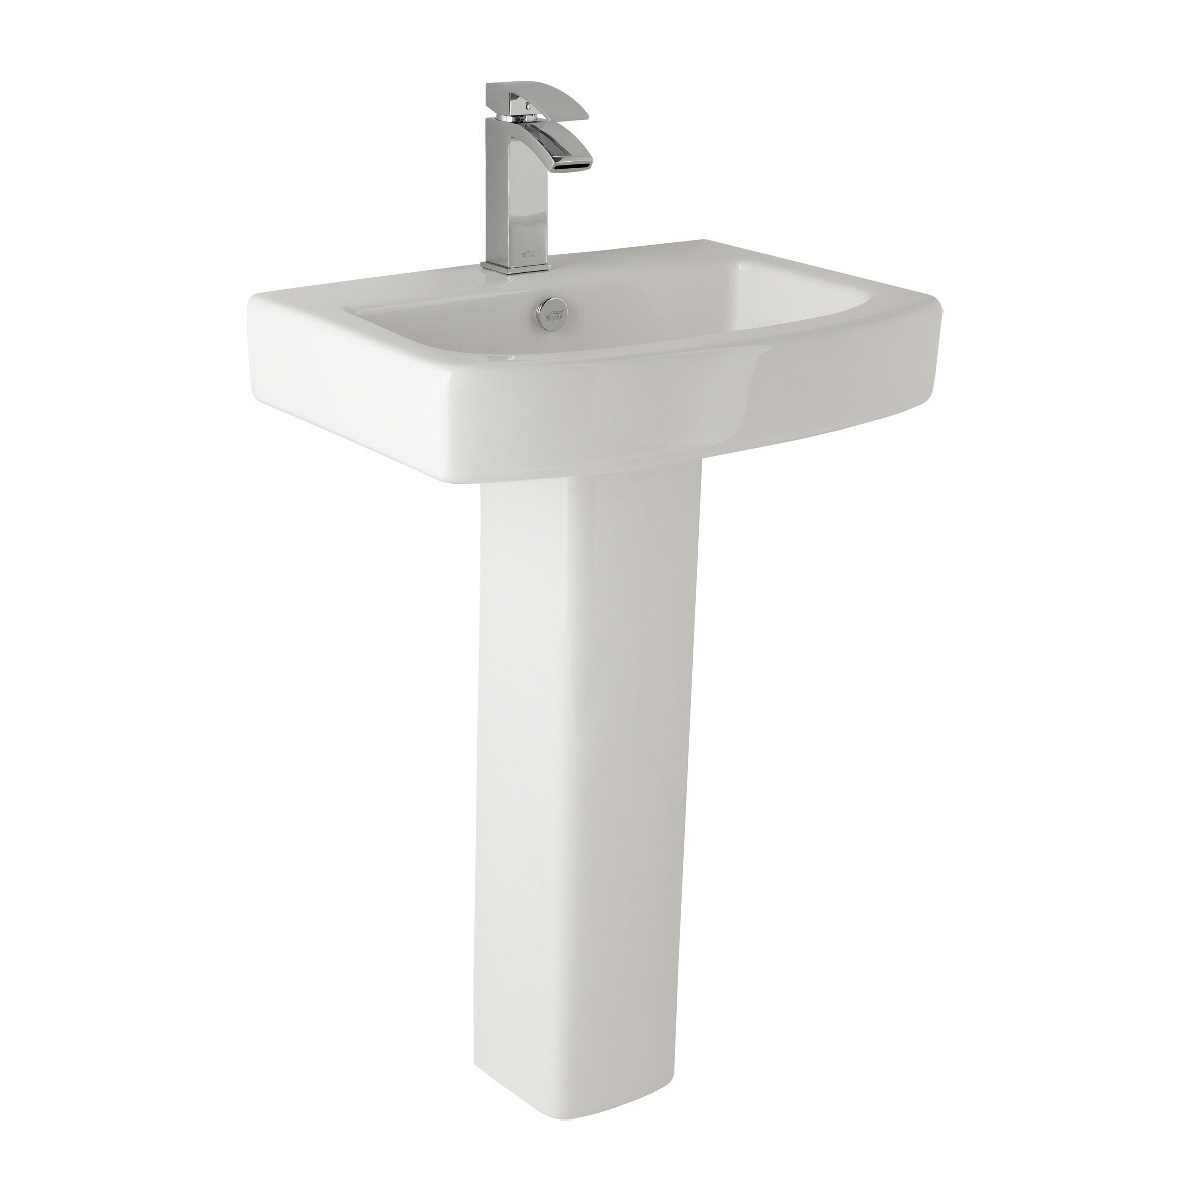 K-Vit Embrace 1TH Basin & Pedestal